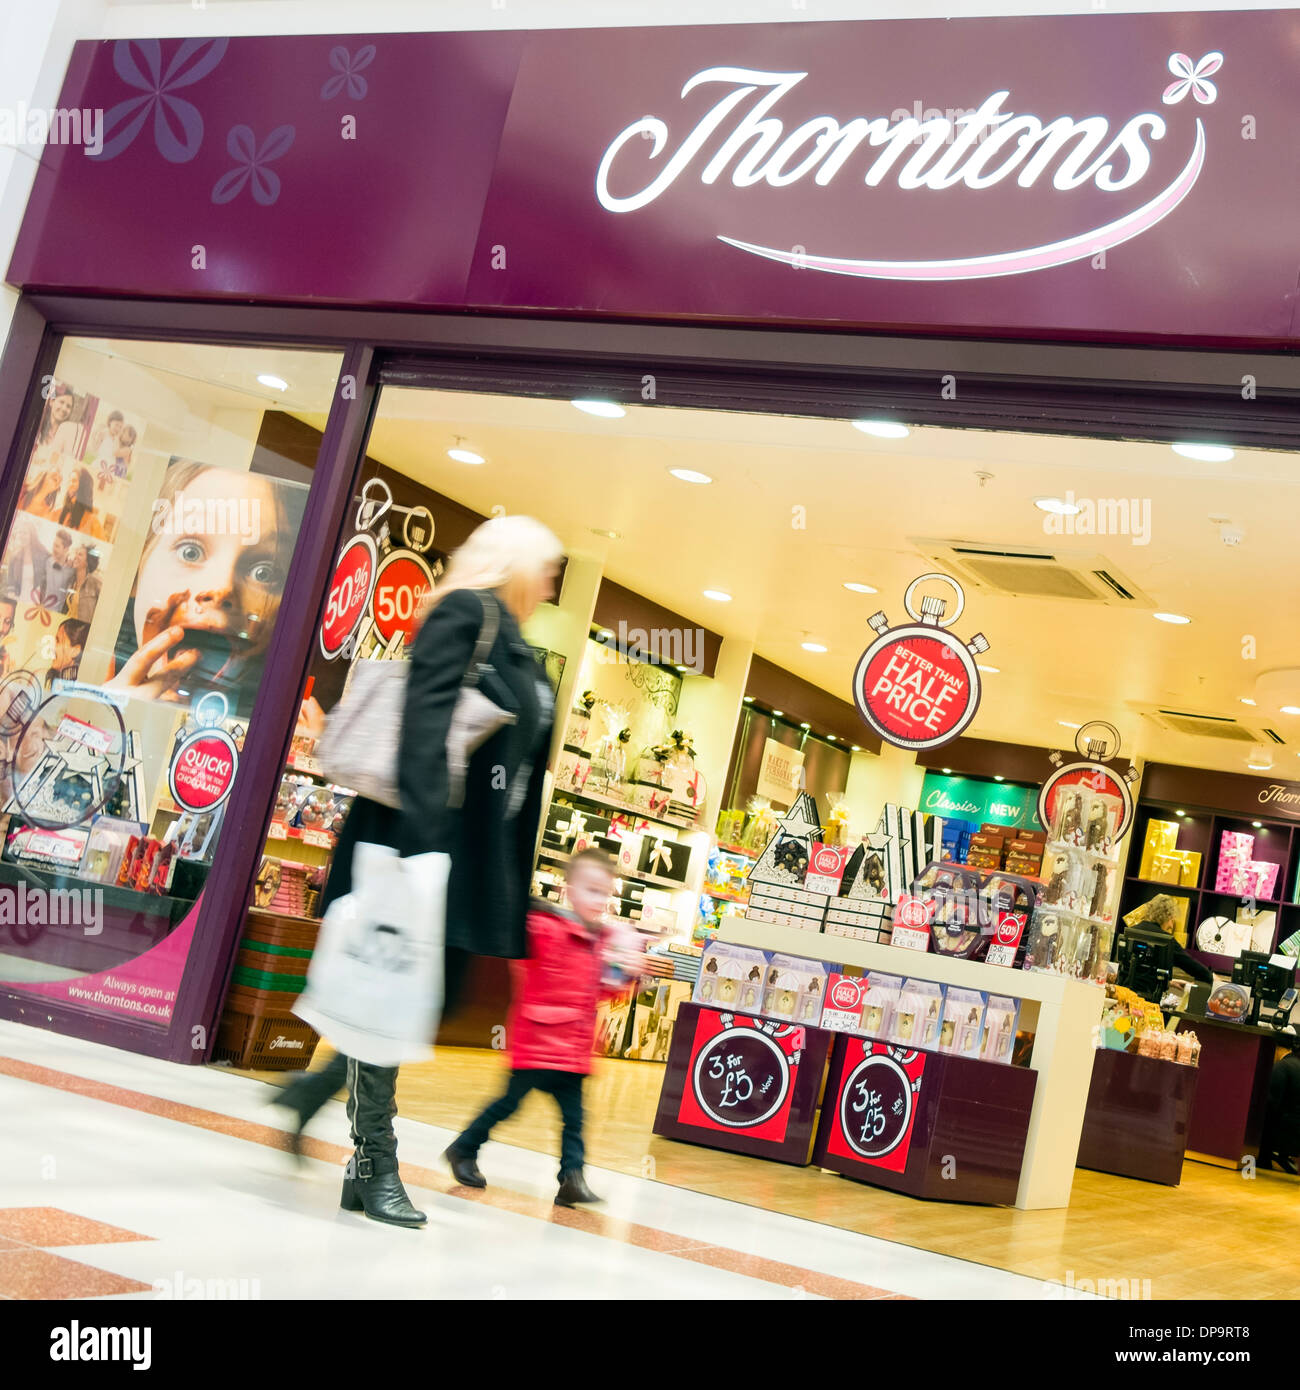 Thorntons chocolate store at Merry Hill, UK. - Stock Image